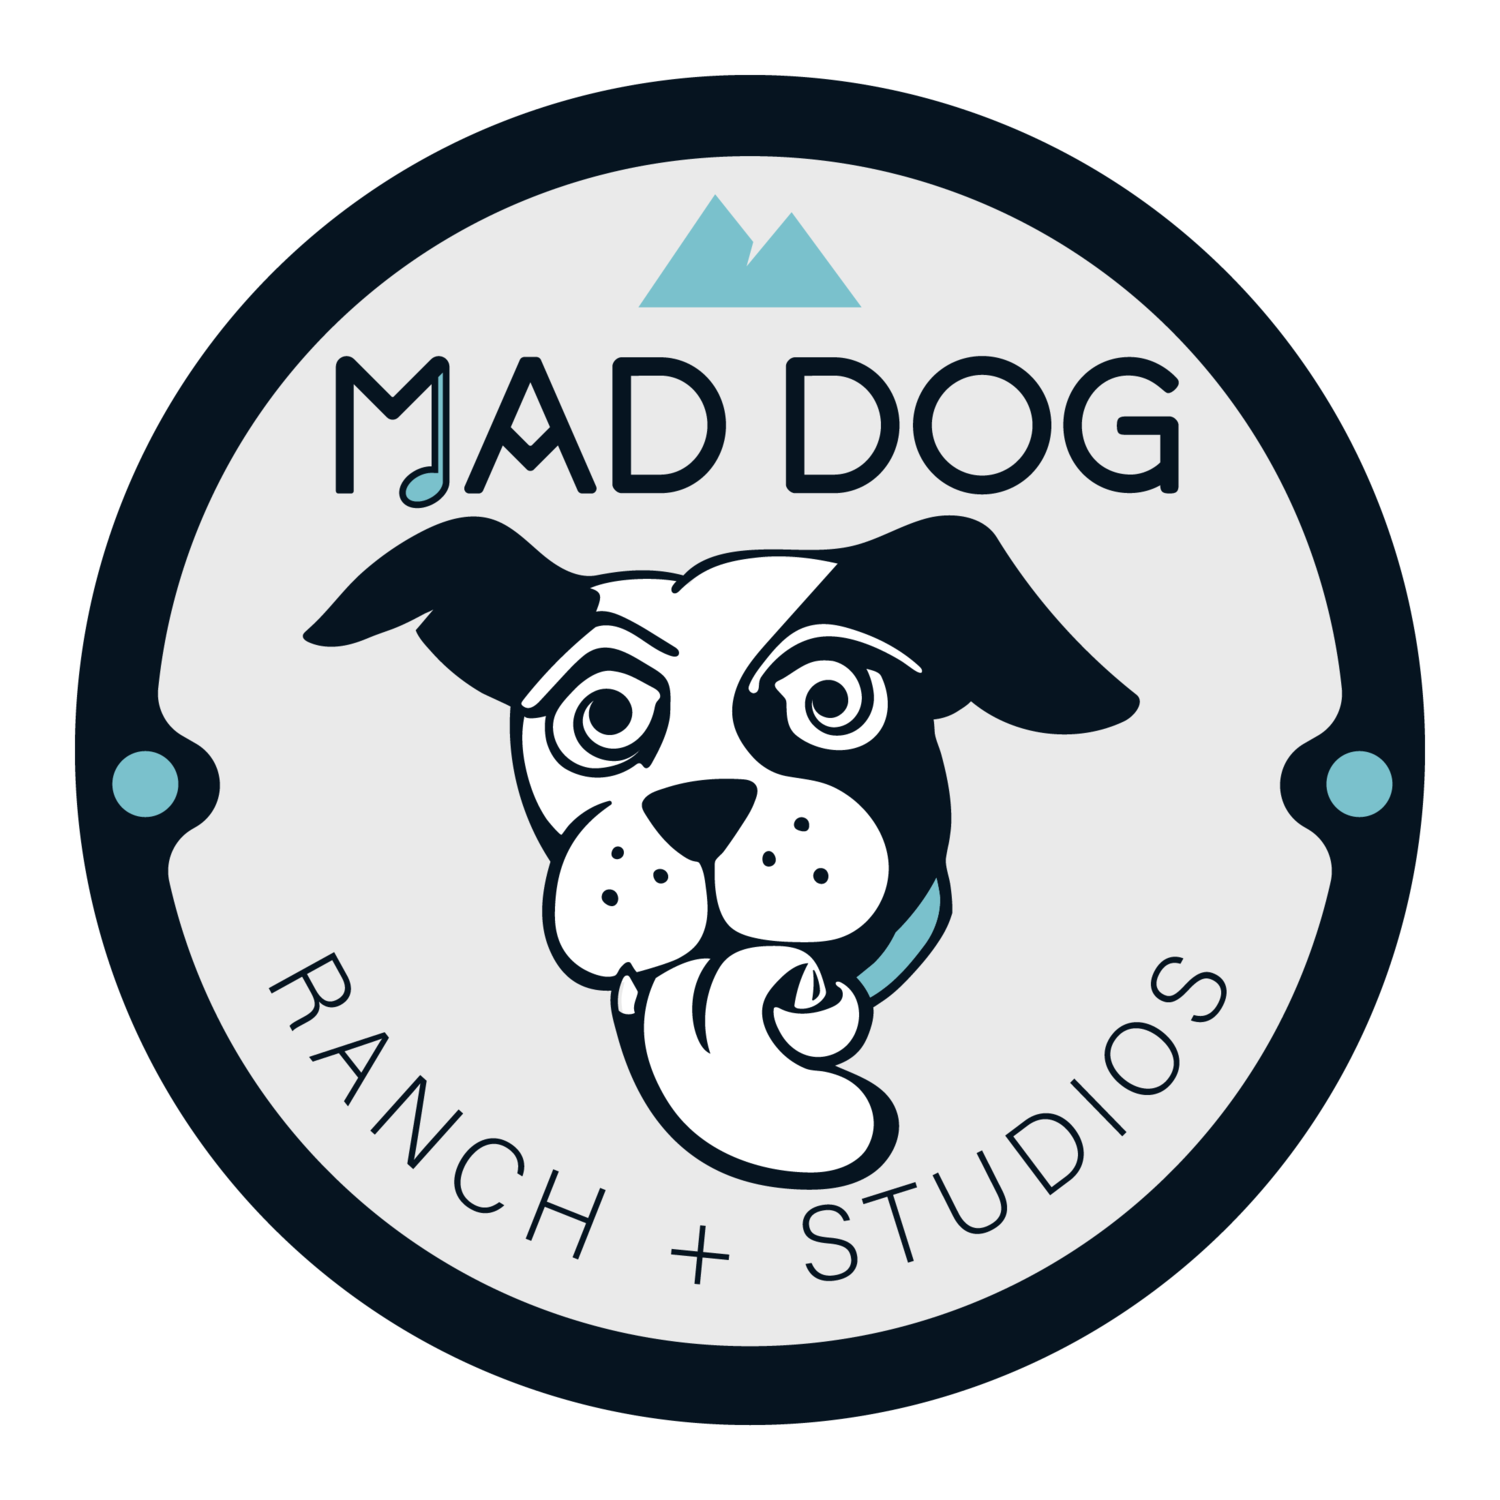 Mad Dog Ranch + Studios